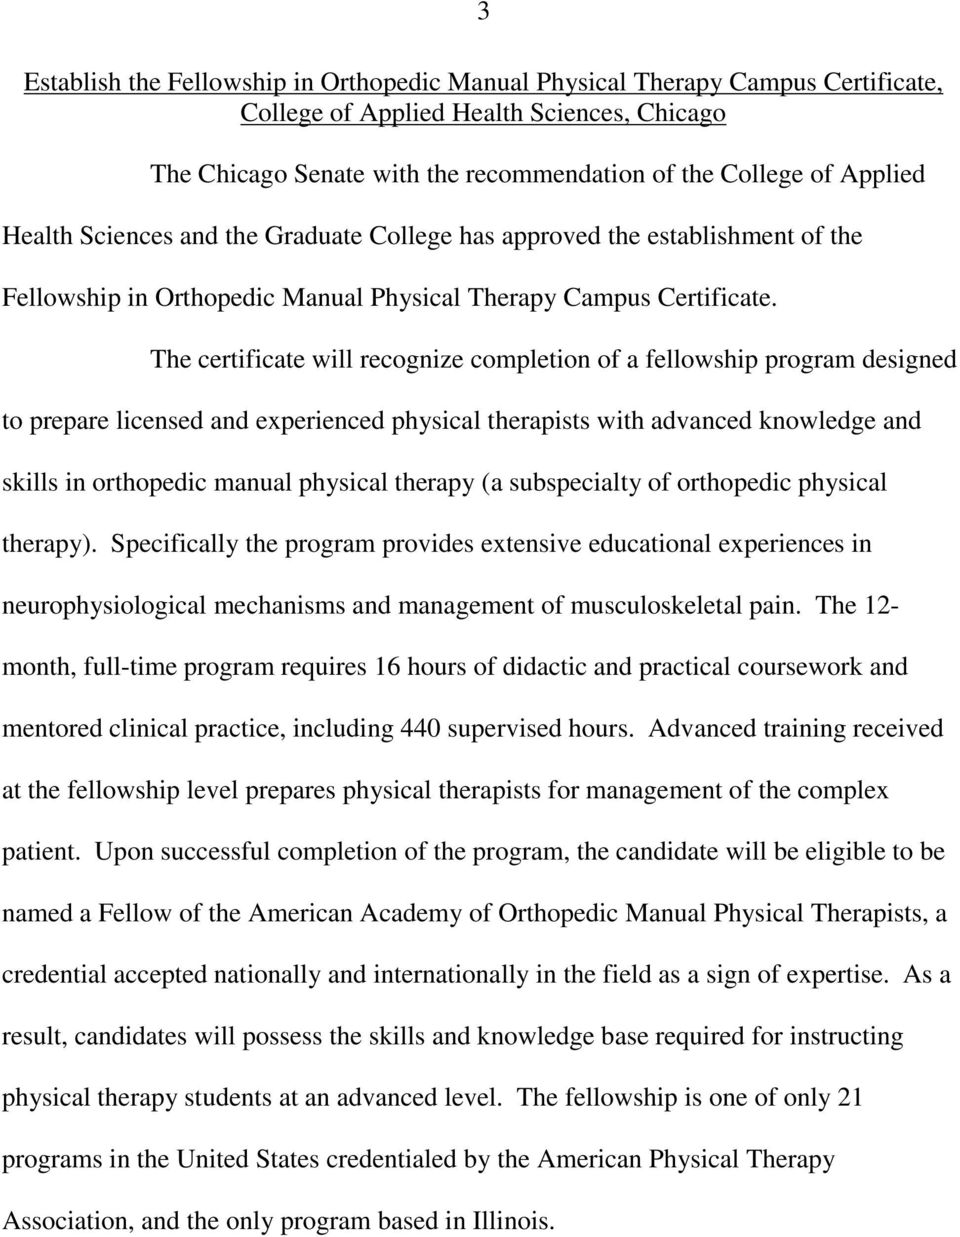 The certificate will recognize completion of a fellowship program designed to prepare licensed and experienced physical therapists with advanced knowledge and skills in orthopedic manual physical